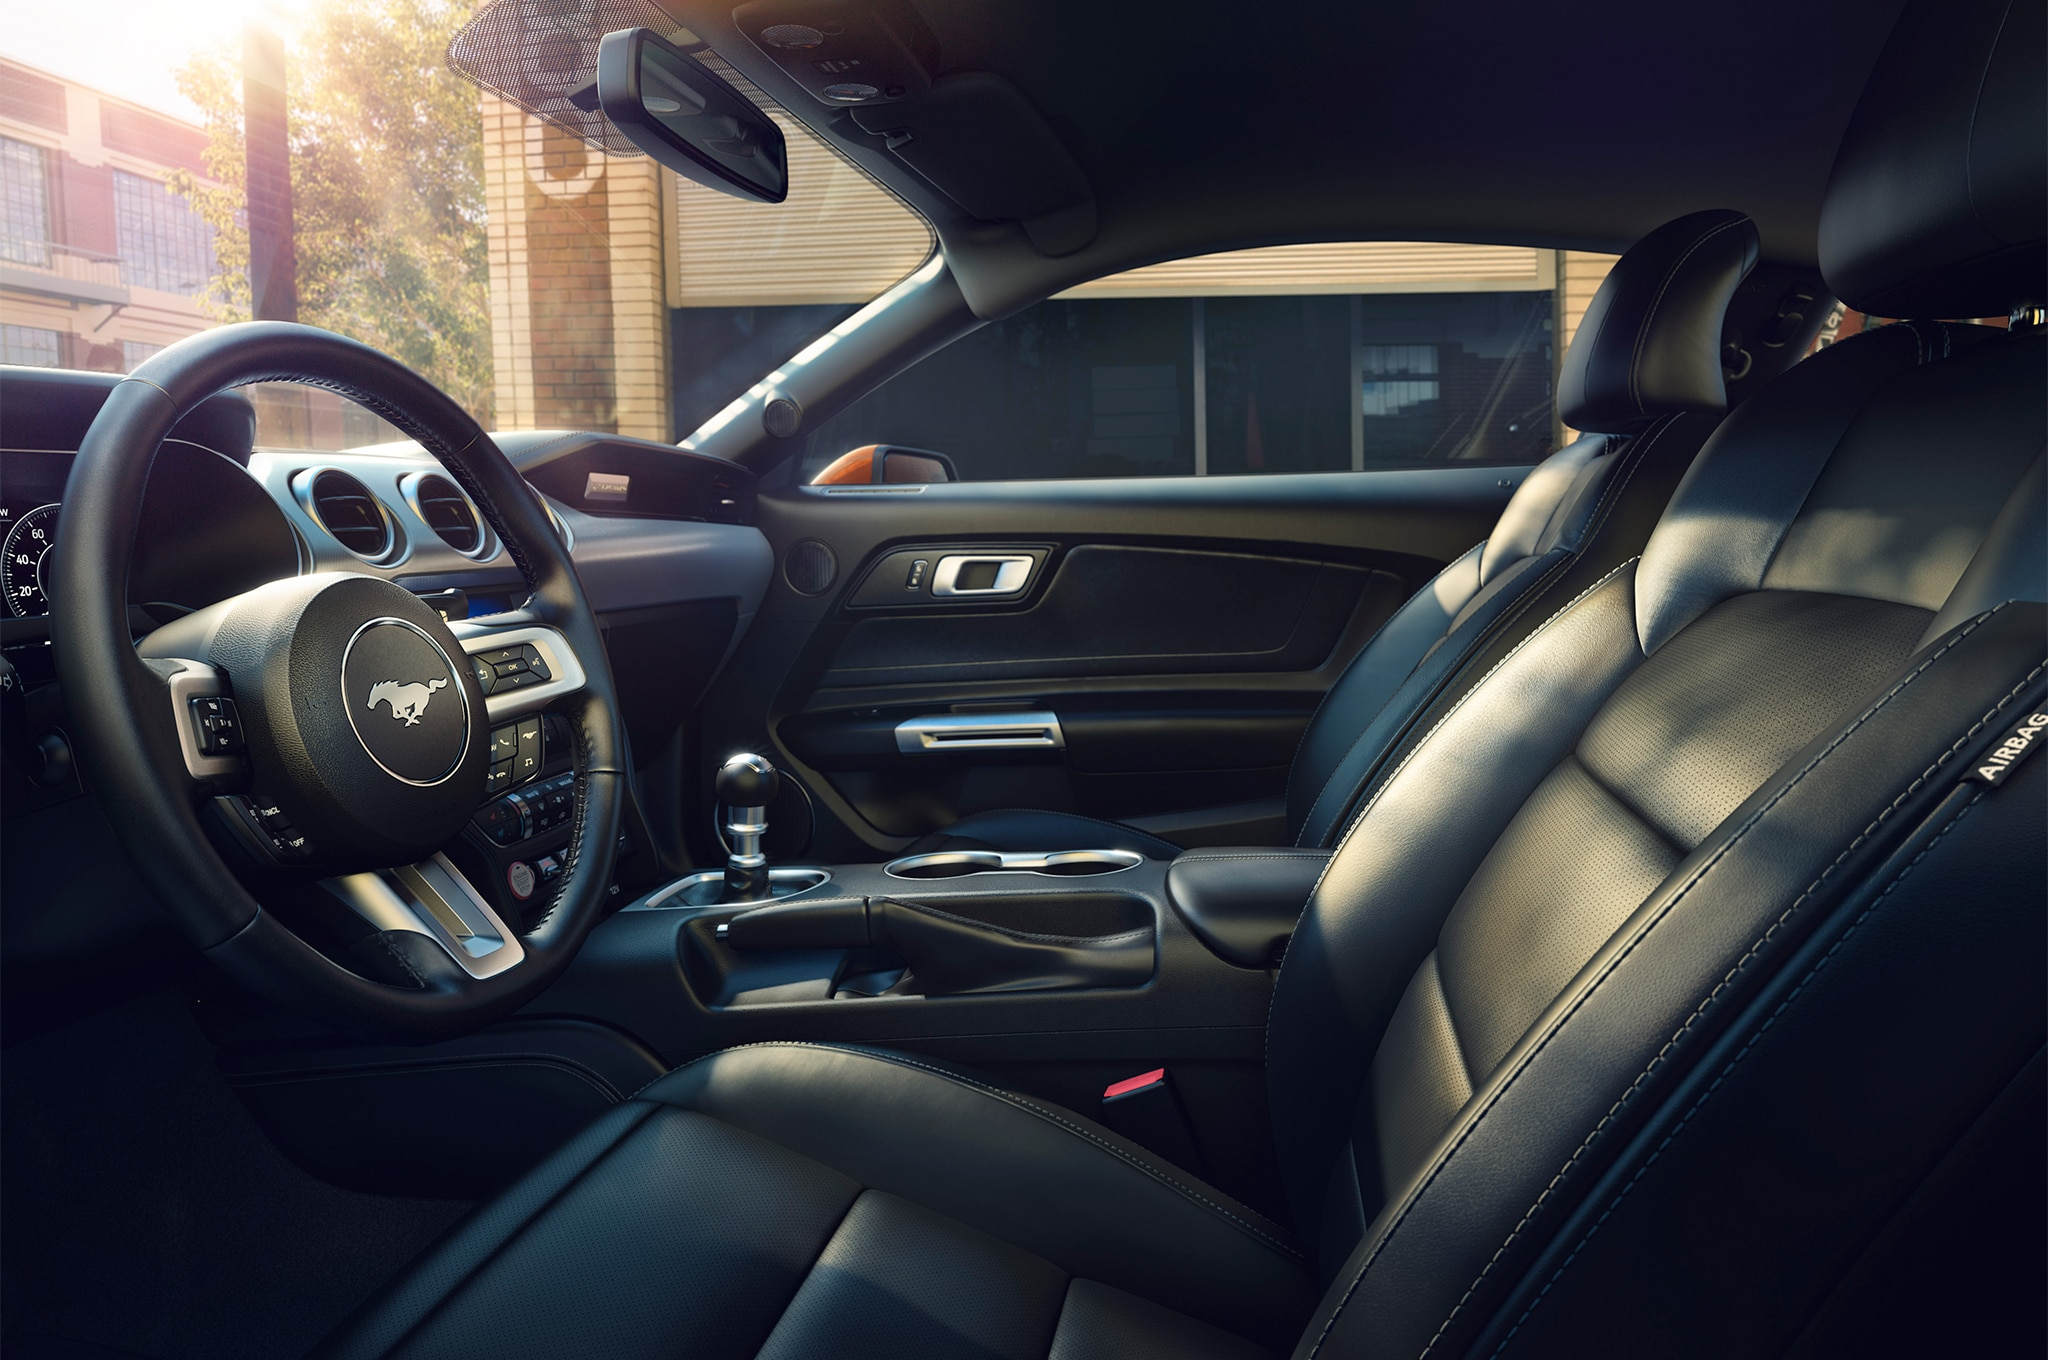 2018 Ford Mustang front interior